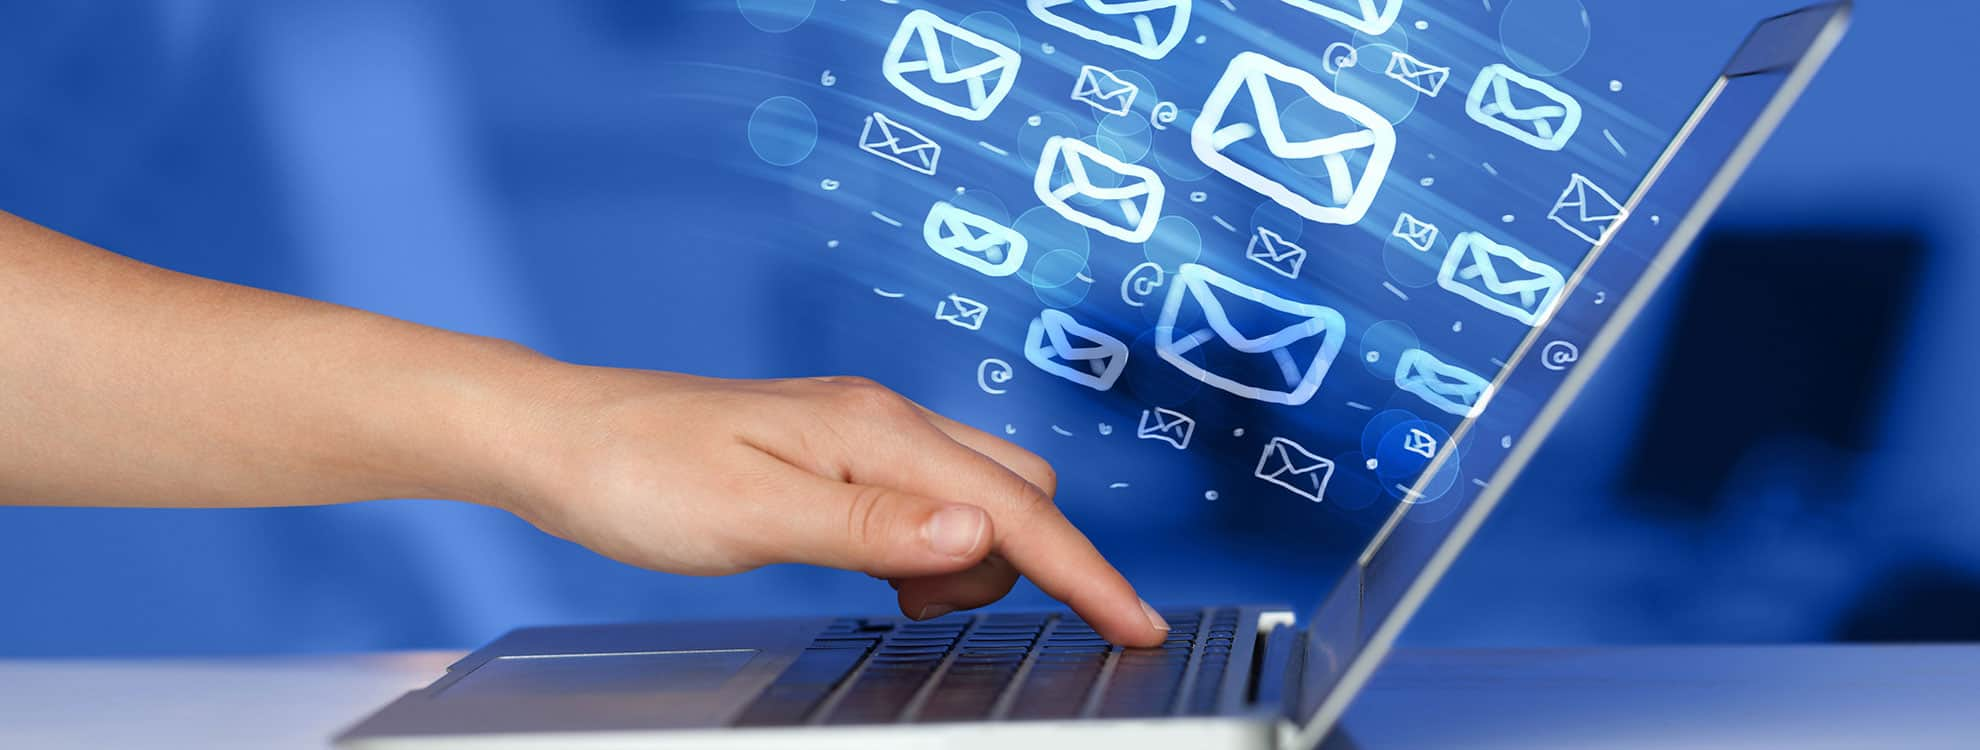 email marketing, newsletter